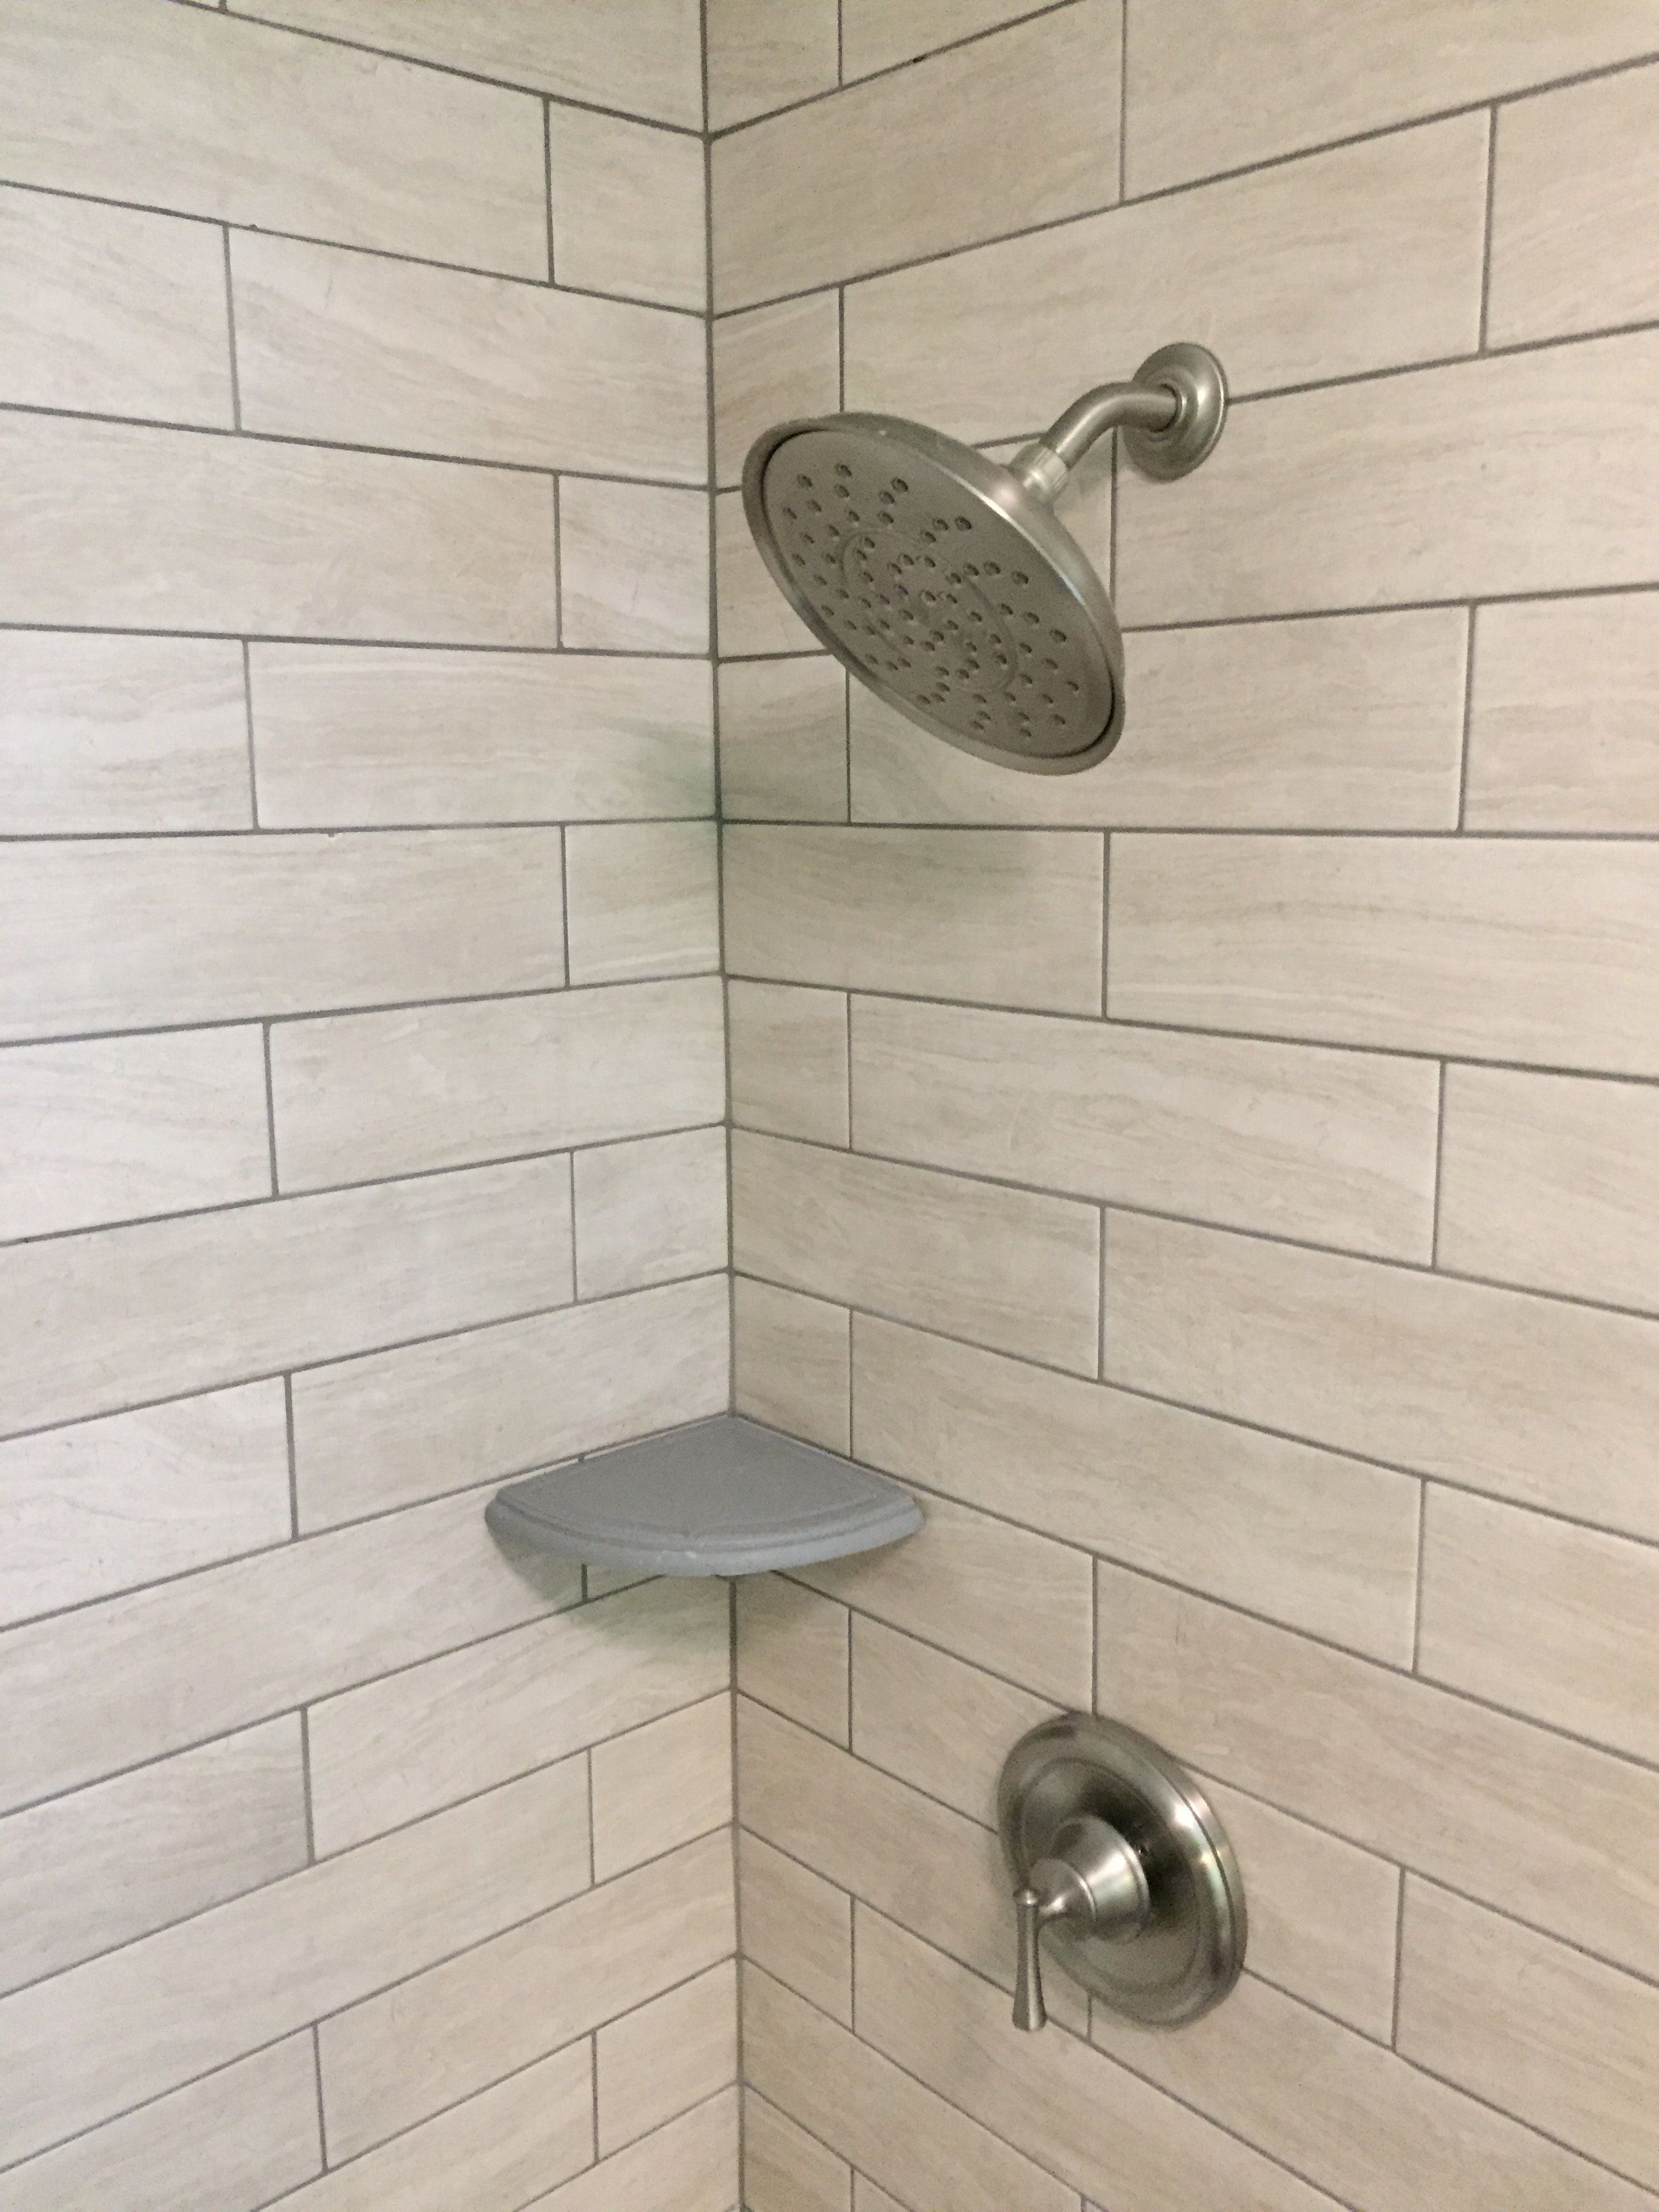 Add A Shampoo Corner Shelf To Your Bath After Tile Installs In Five Minutes And Is A Permanent Solution To Those Bott With Images Corner Shelves Shower Shelves Shower Tile